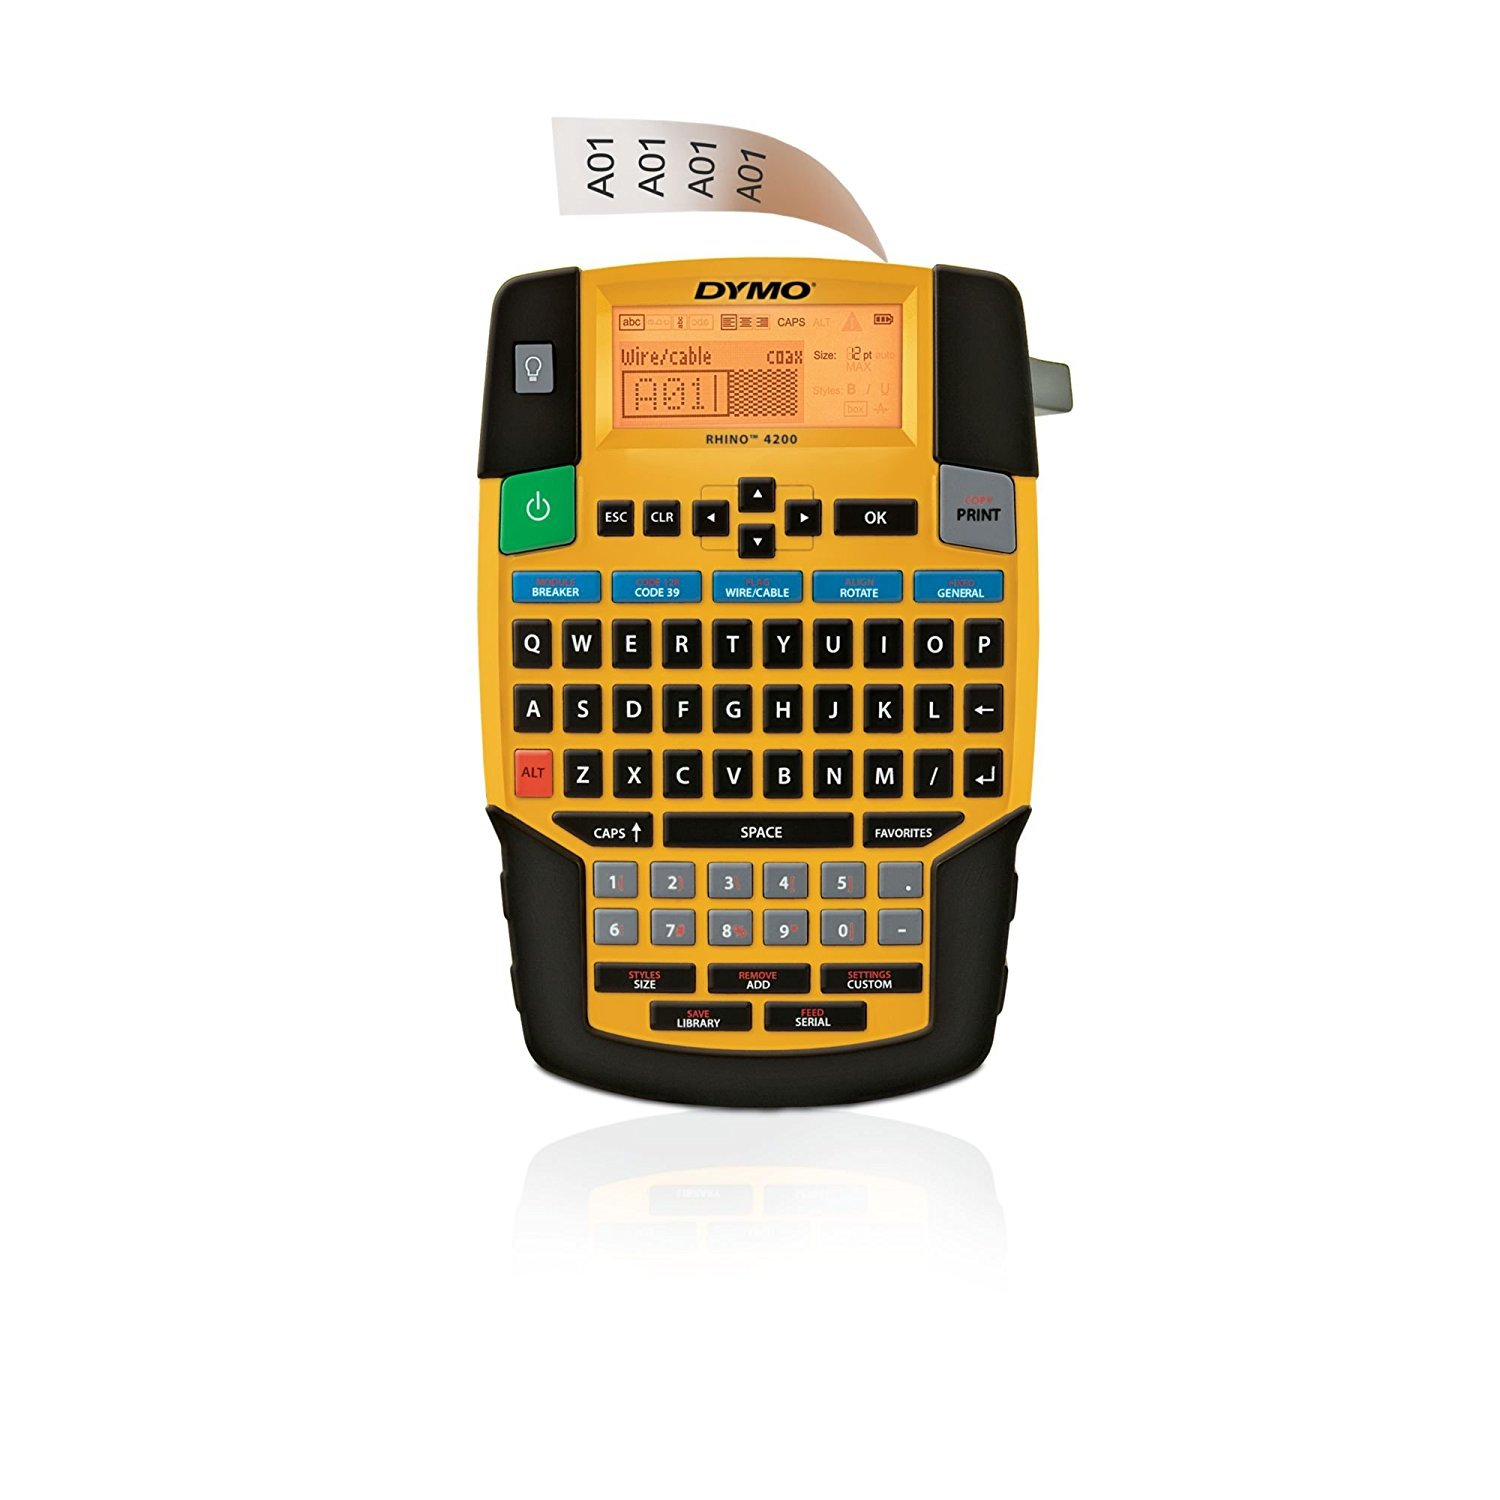 Dymo Rhino 4200 English Layout, Handheld use Label Maker S0955990